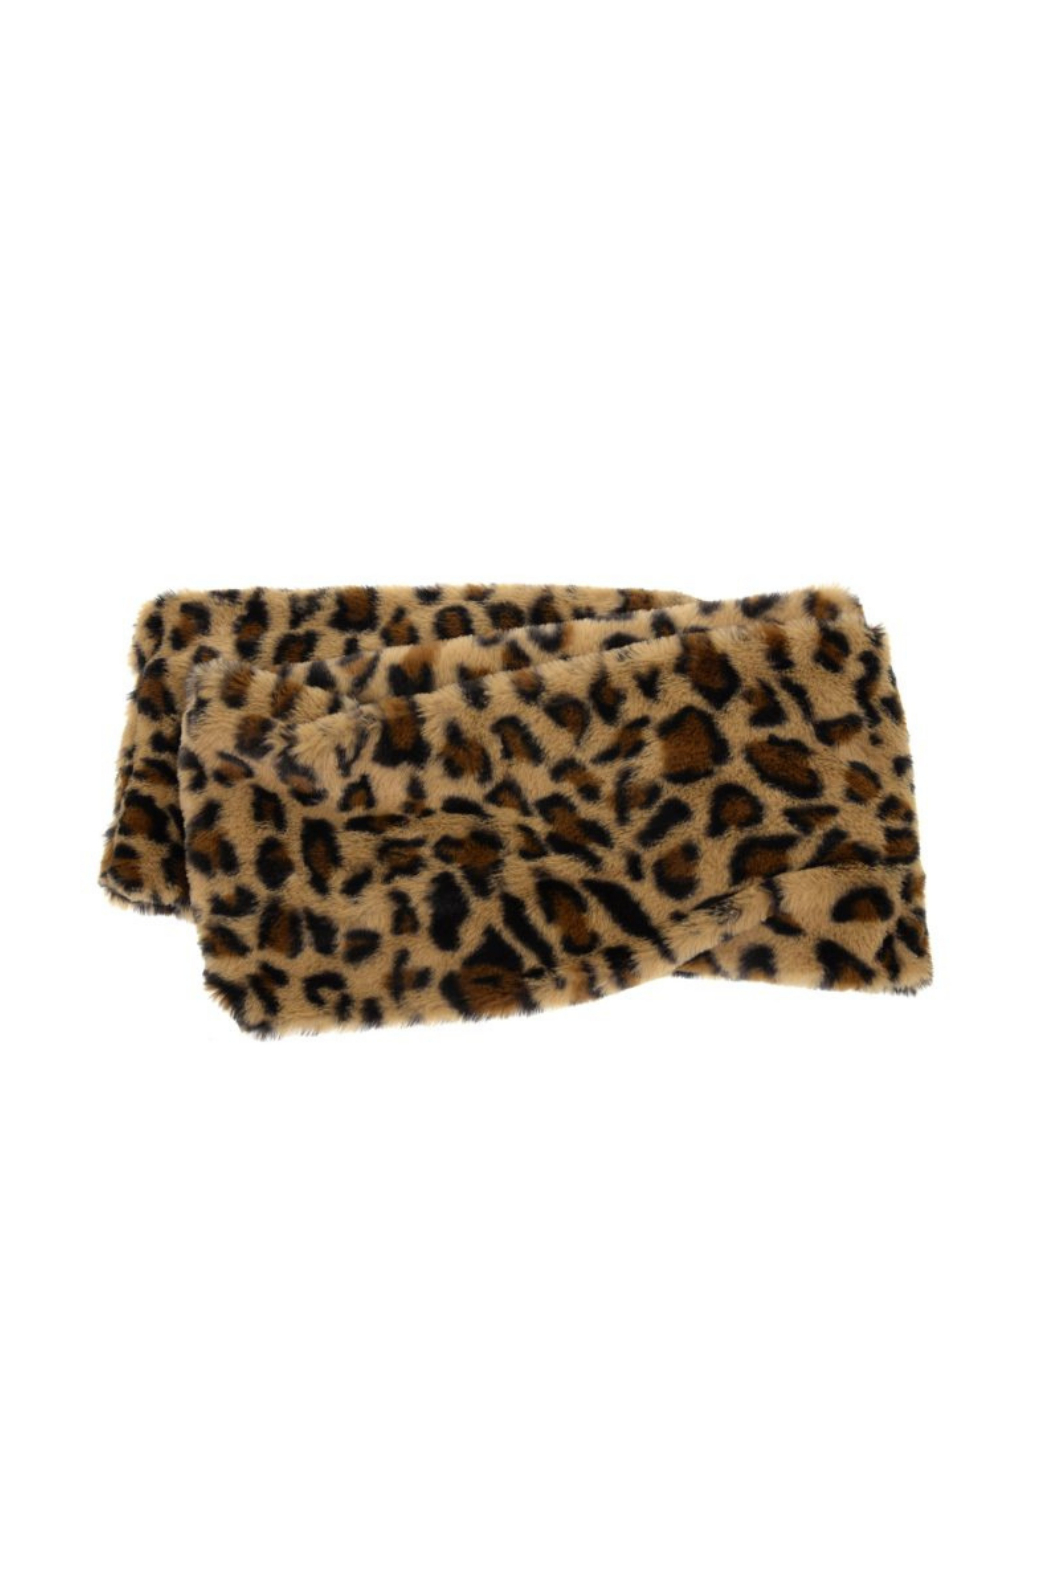 Molly Bracken Panther Infinity Scarf - Front Full Image